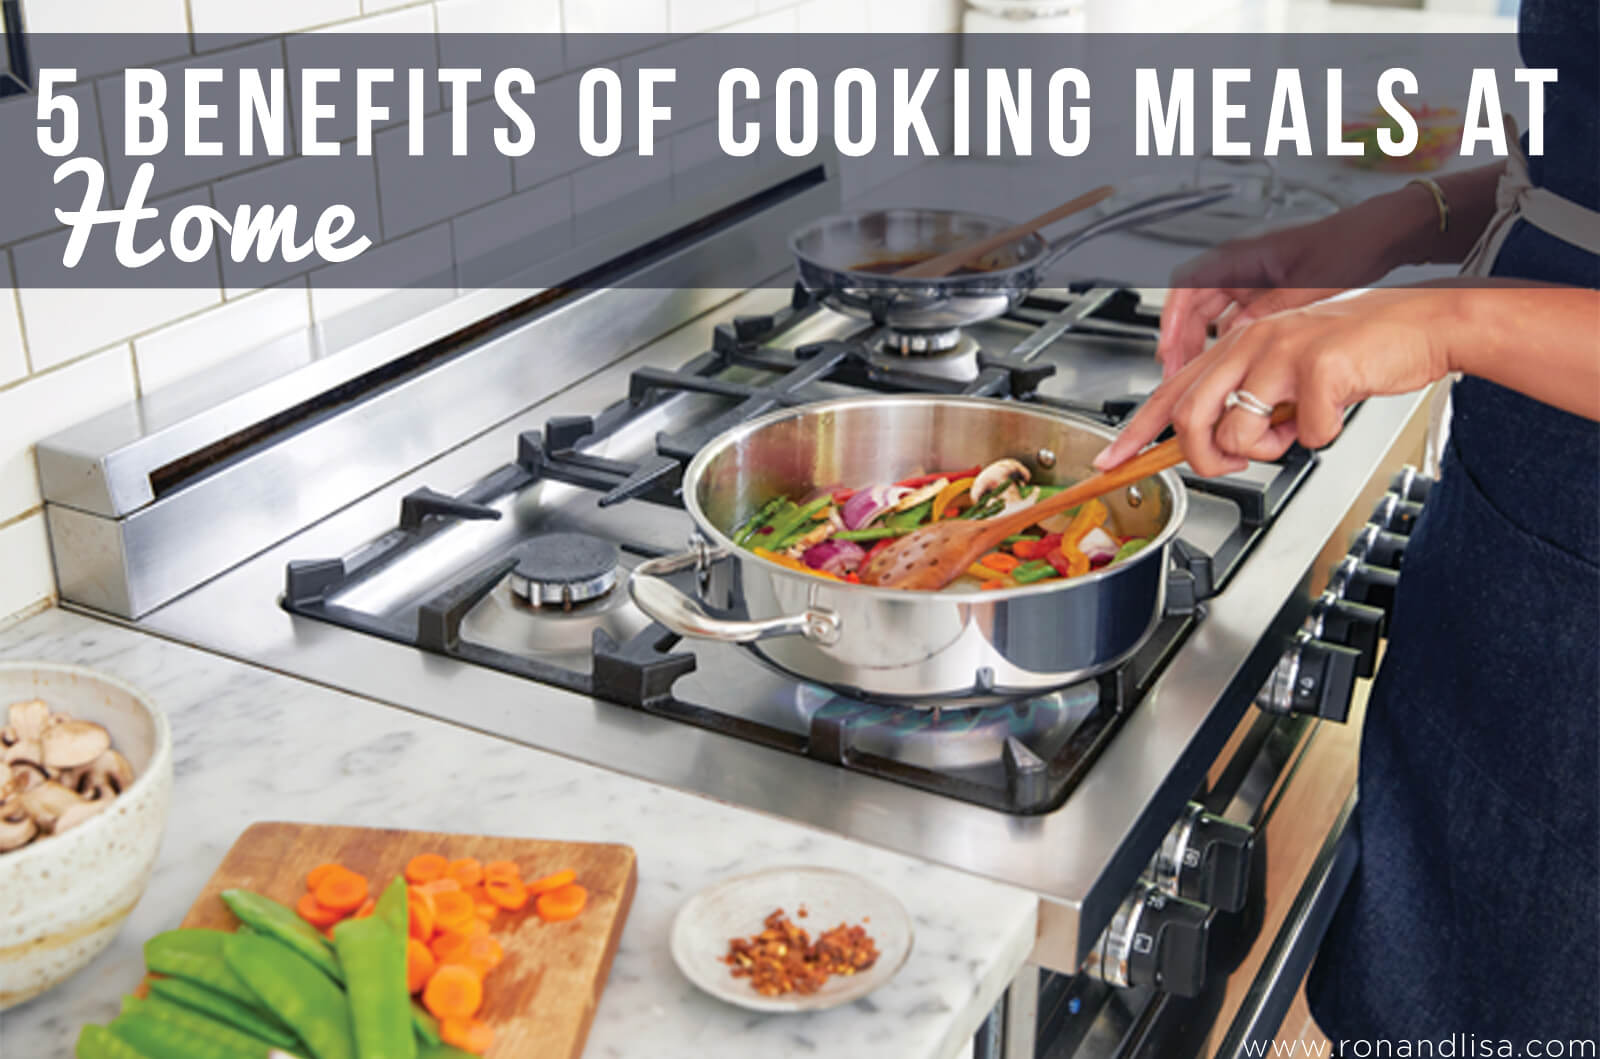 5 Benefits of Cooking Meals at Home